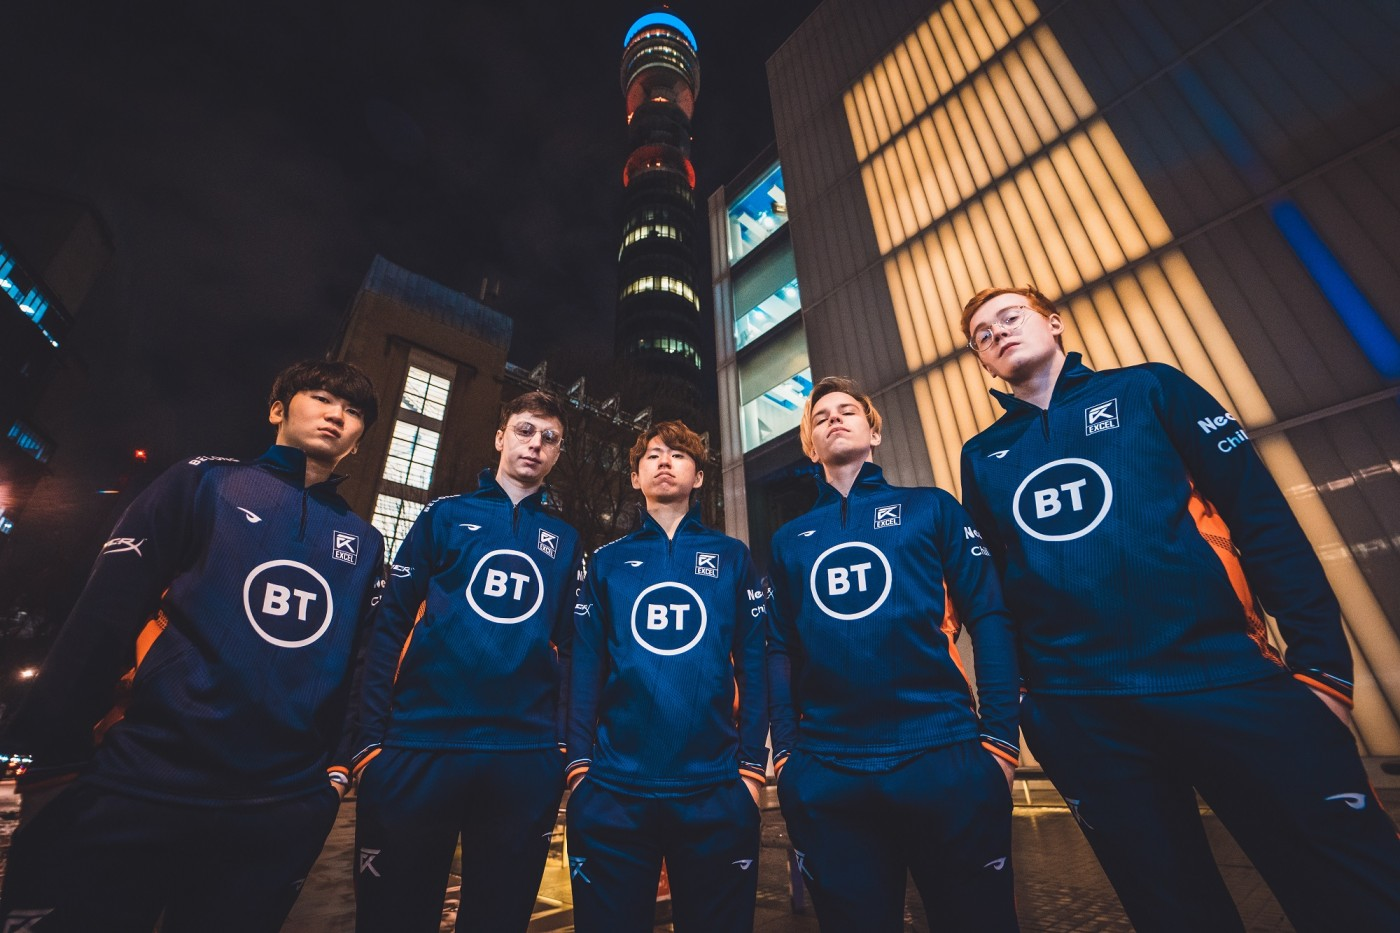 Strive facilitates BT's lead partnership of Excel Esports